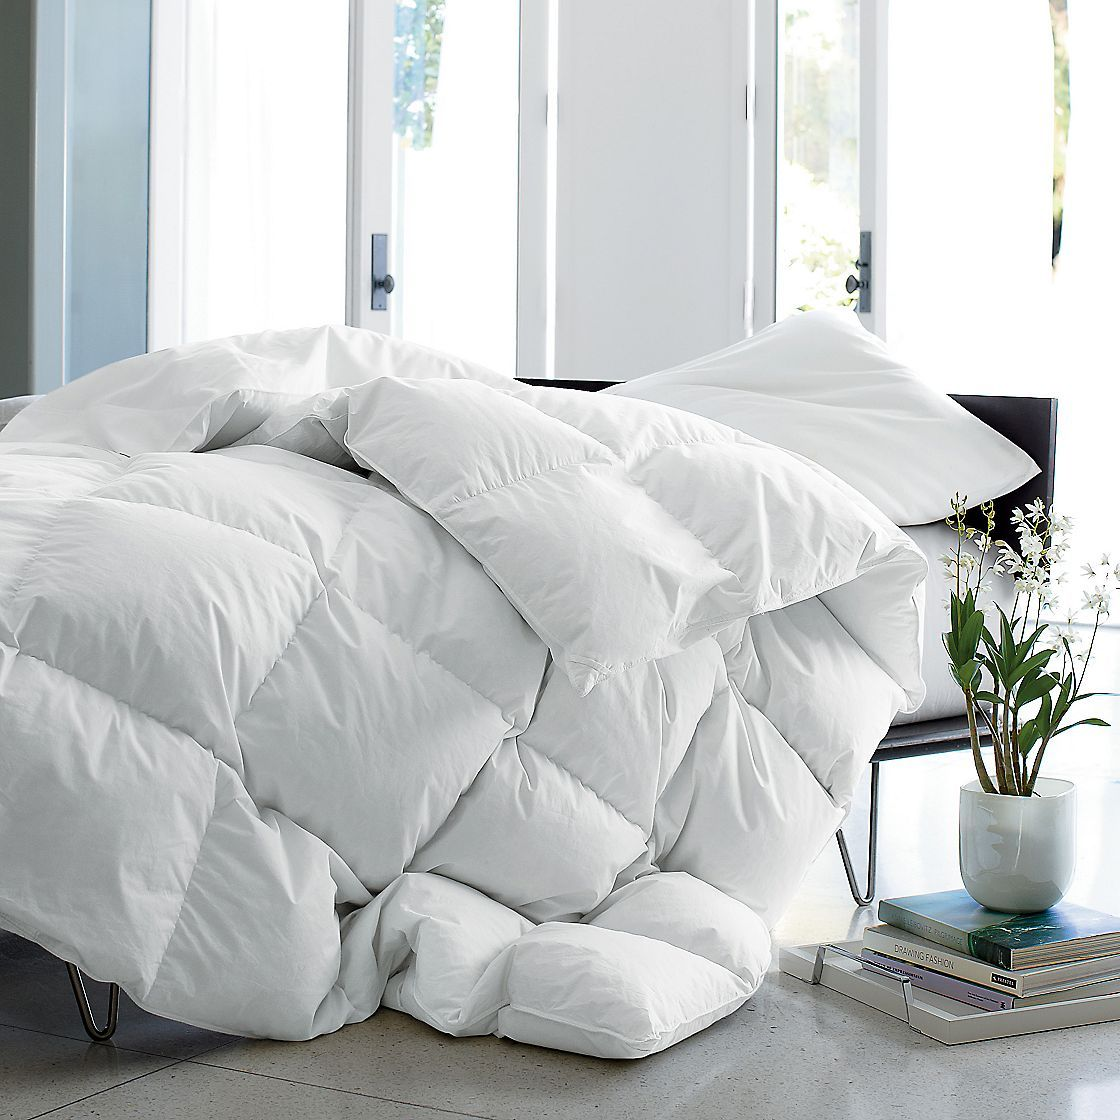 our fluffy make bedroom nesting look bedding comforter how white with new big grace to and your master